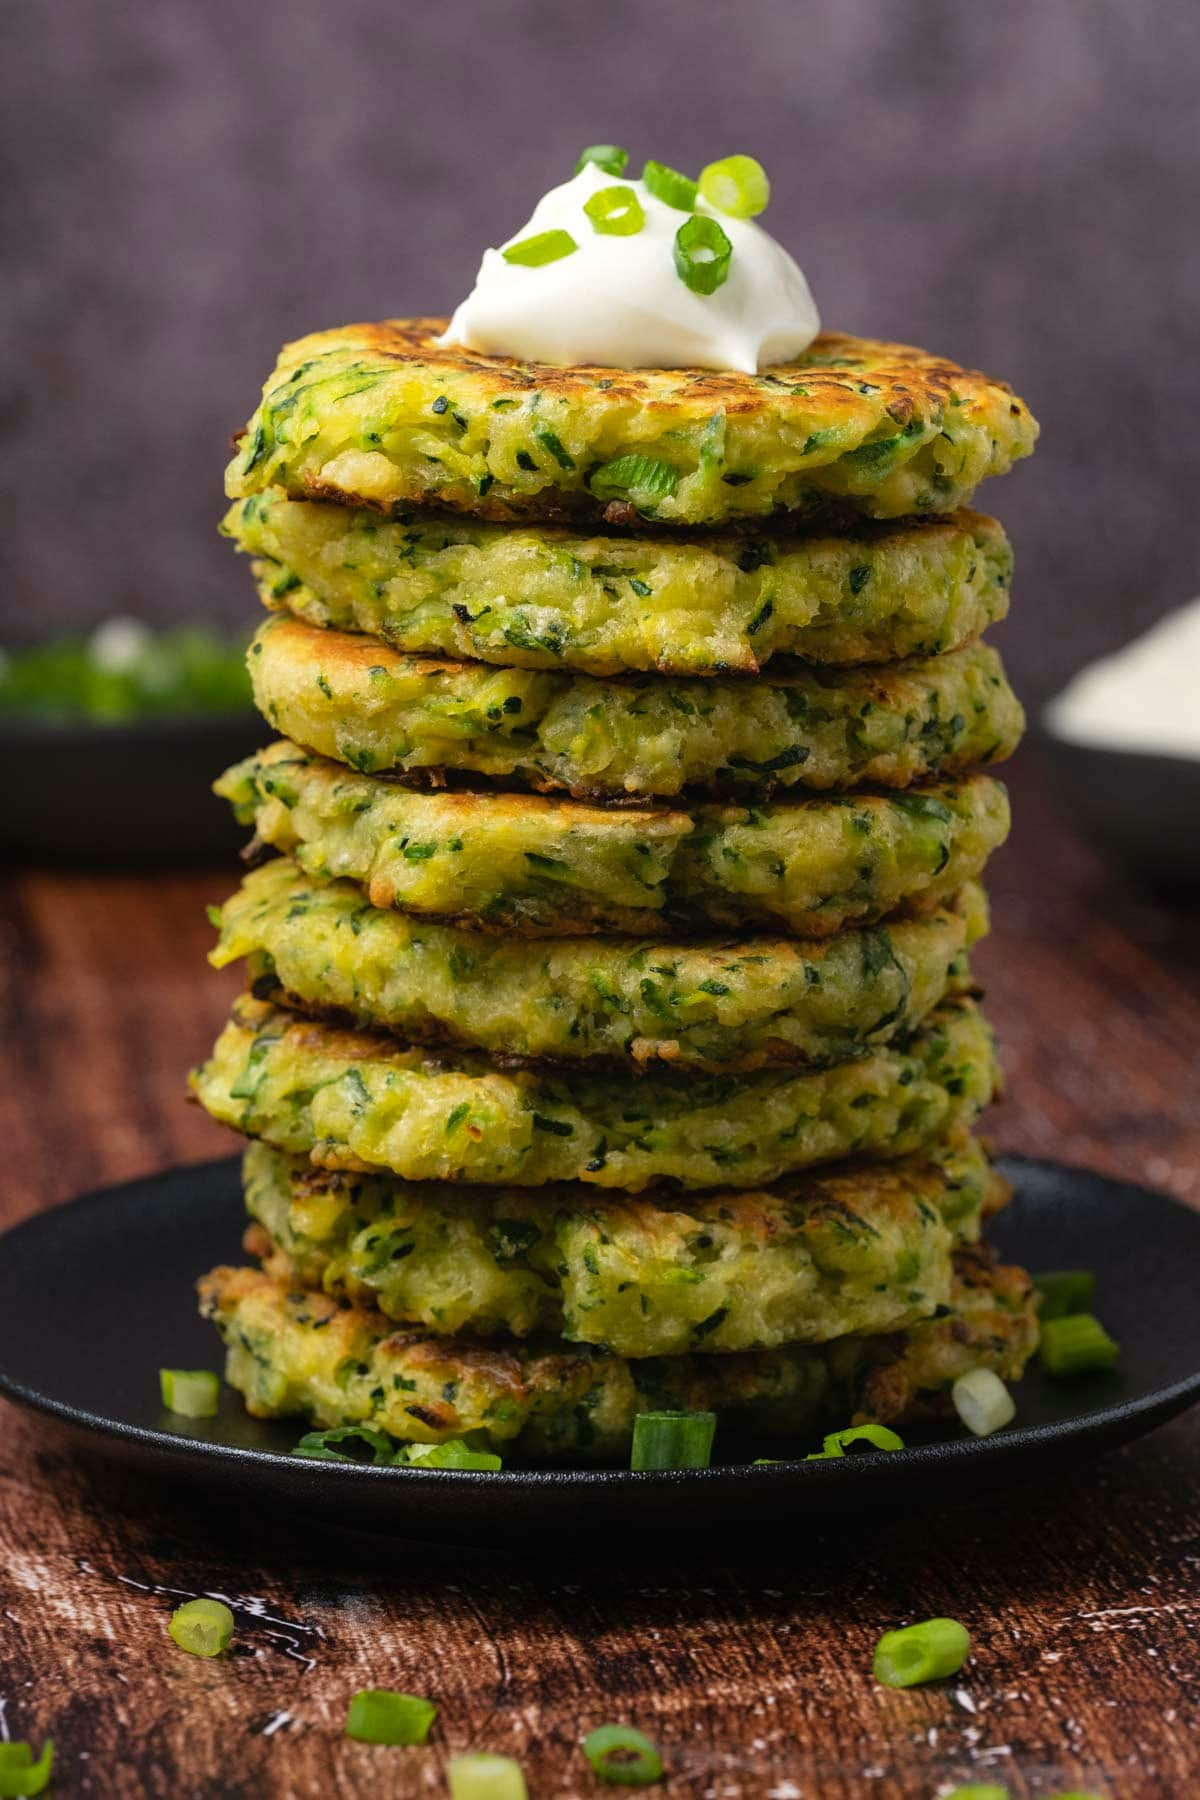 Zucchini fritters in a stack topped with Greek yogurt and chopped green onions.